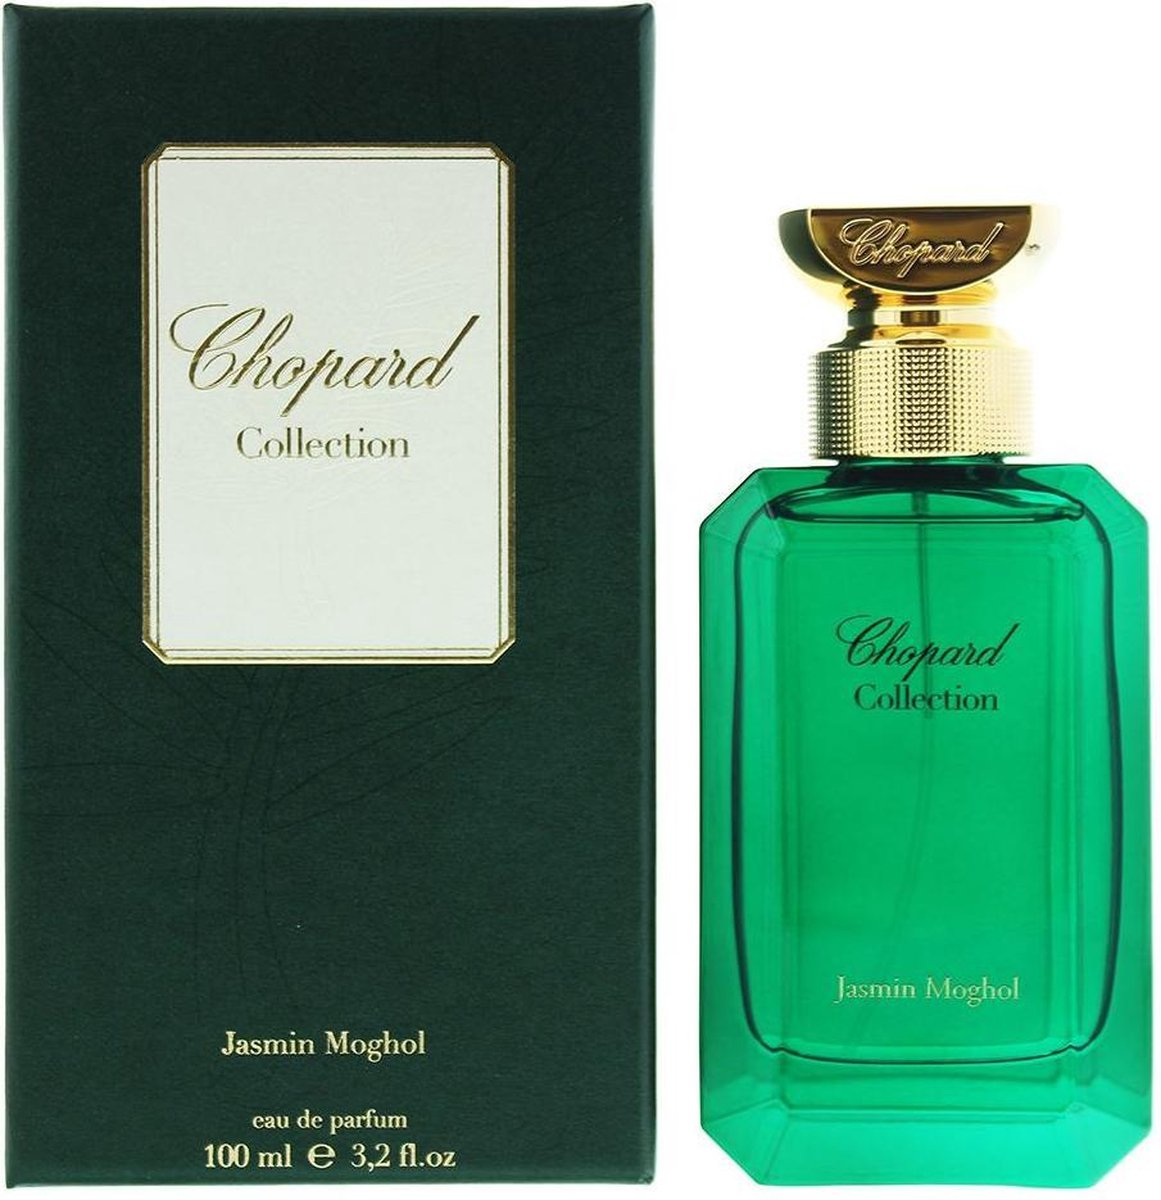 Chopard For Unisex 100